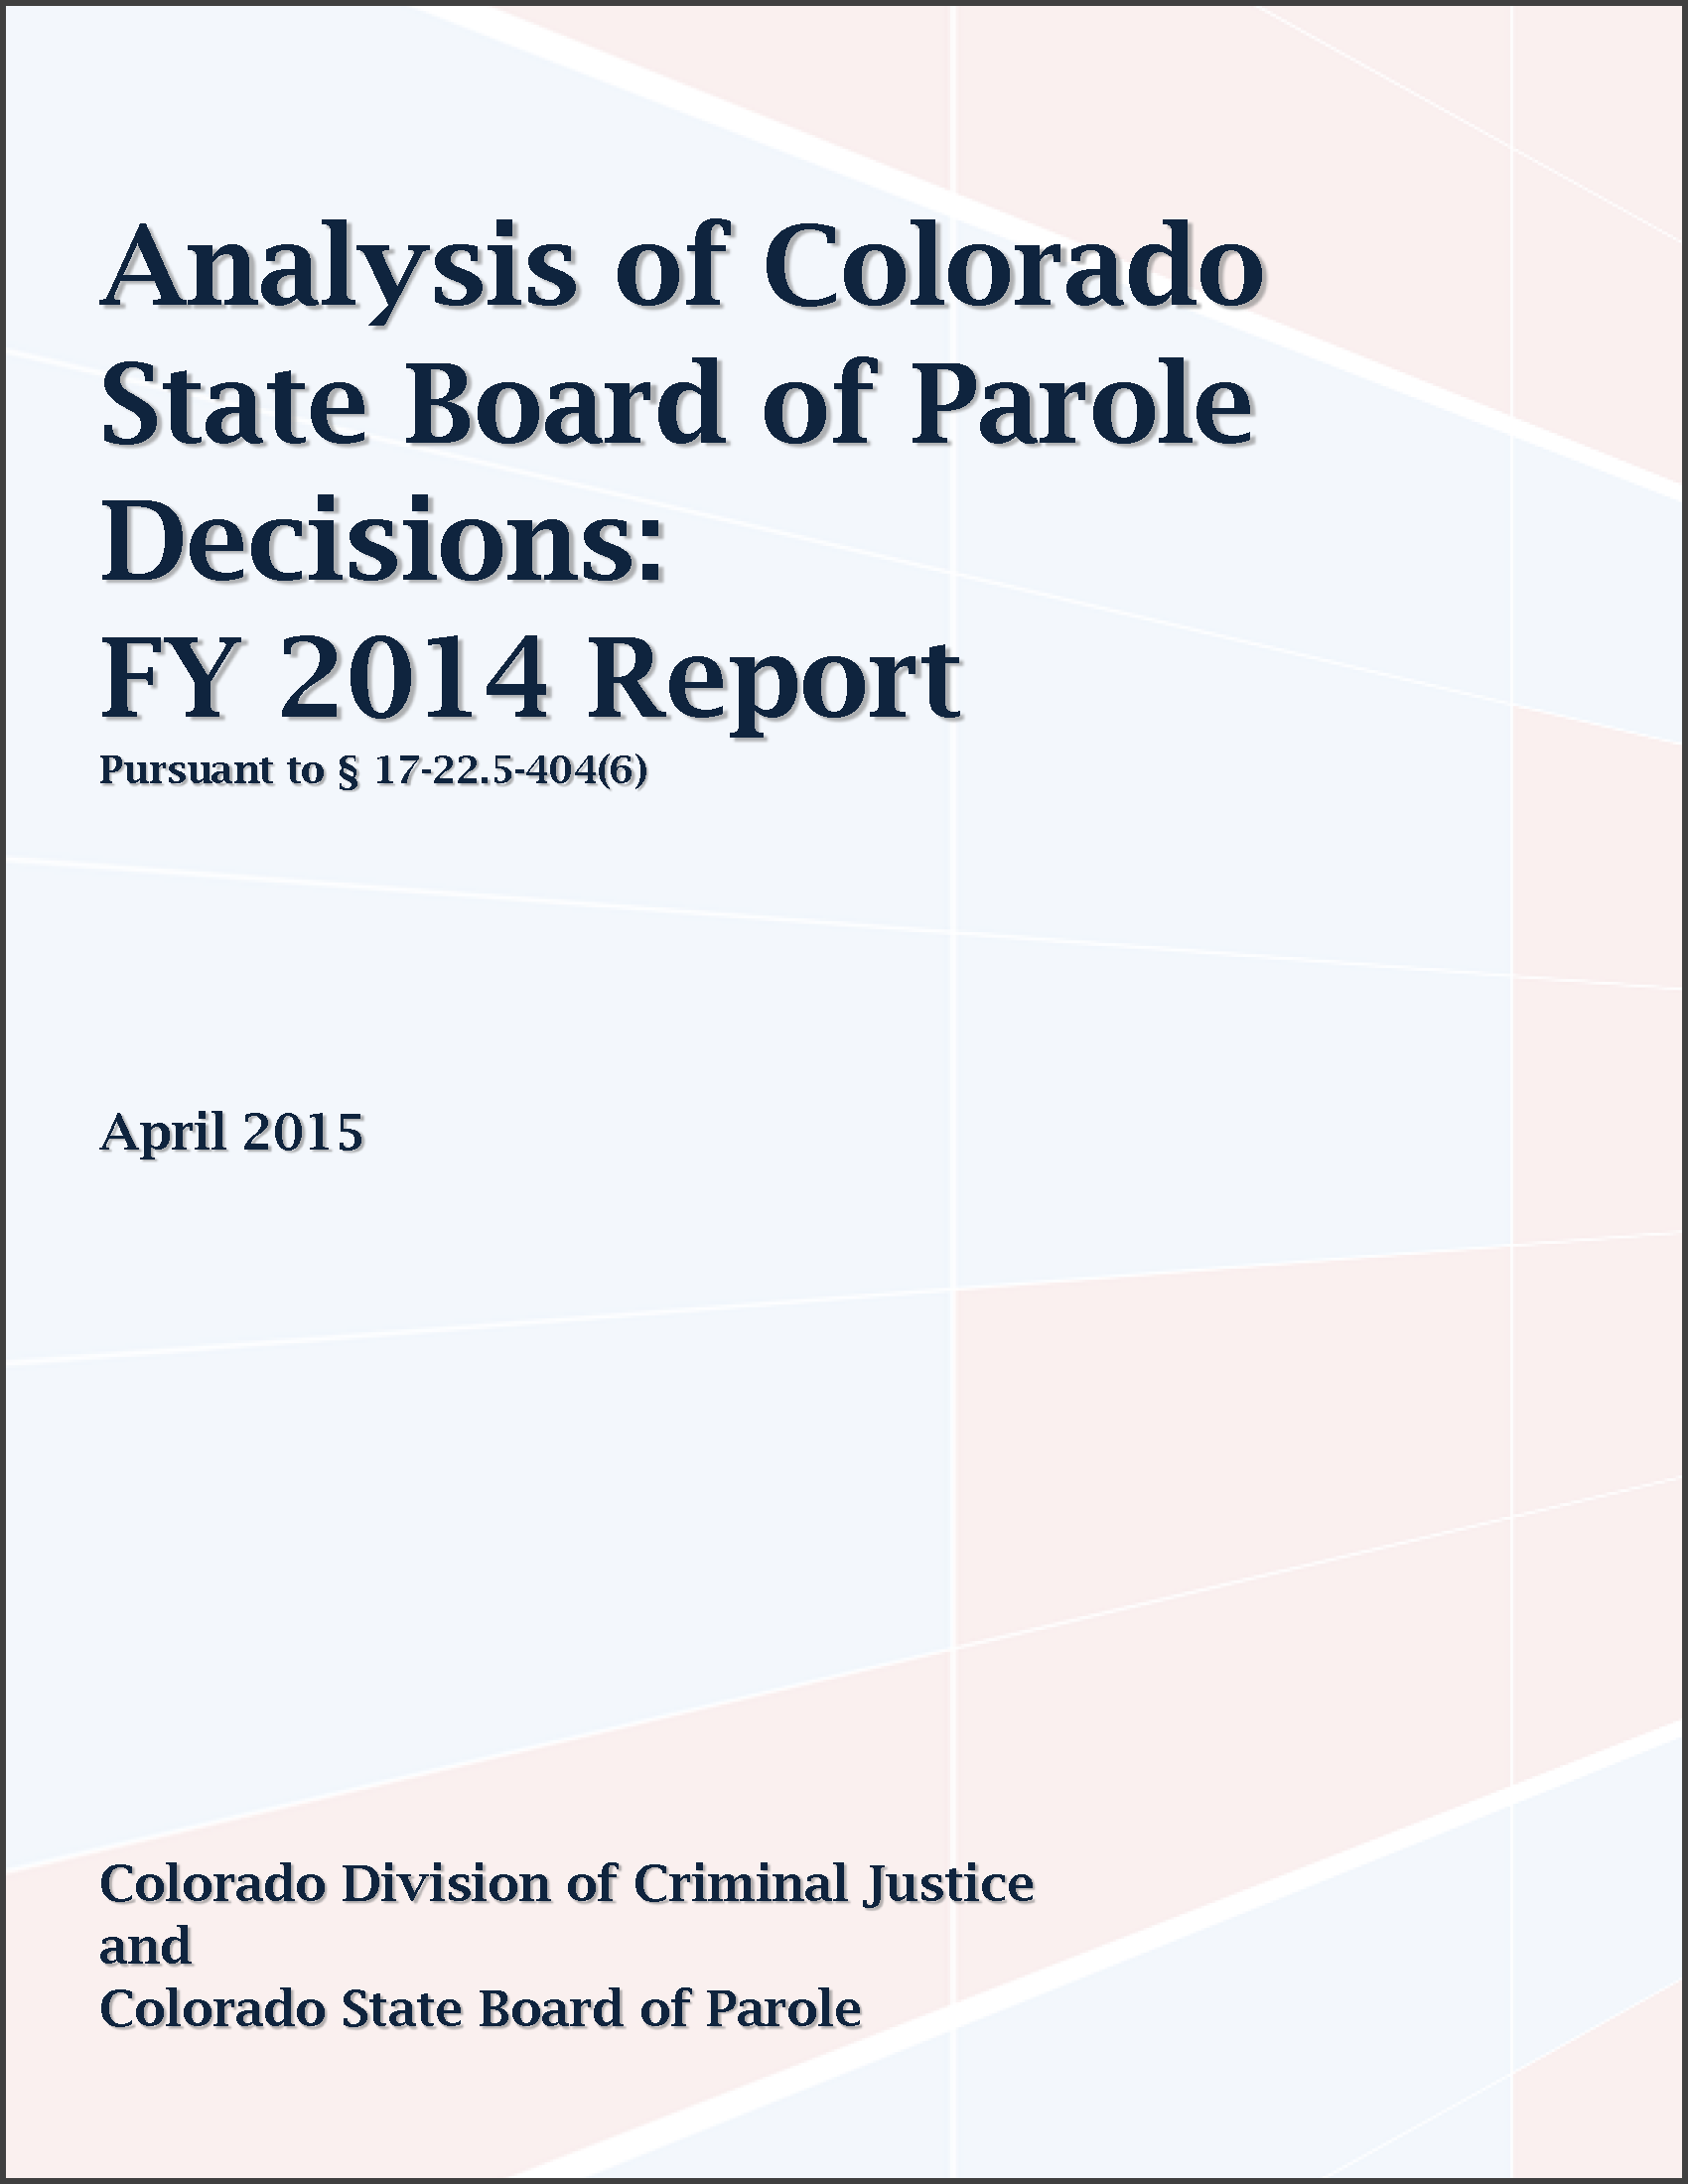 FY 2014 Parole Board Decisions Report